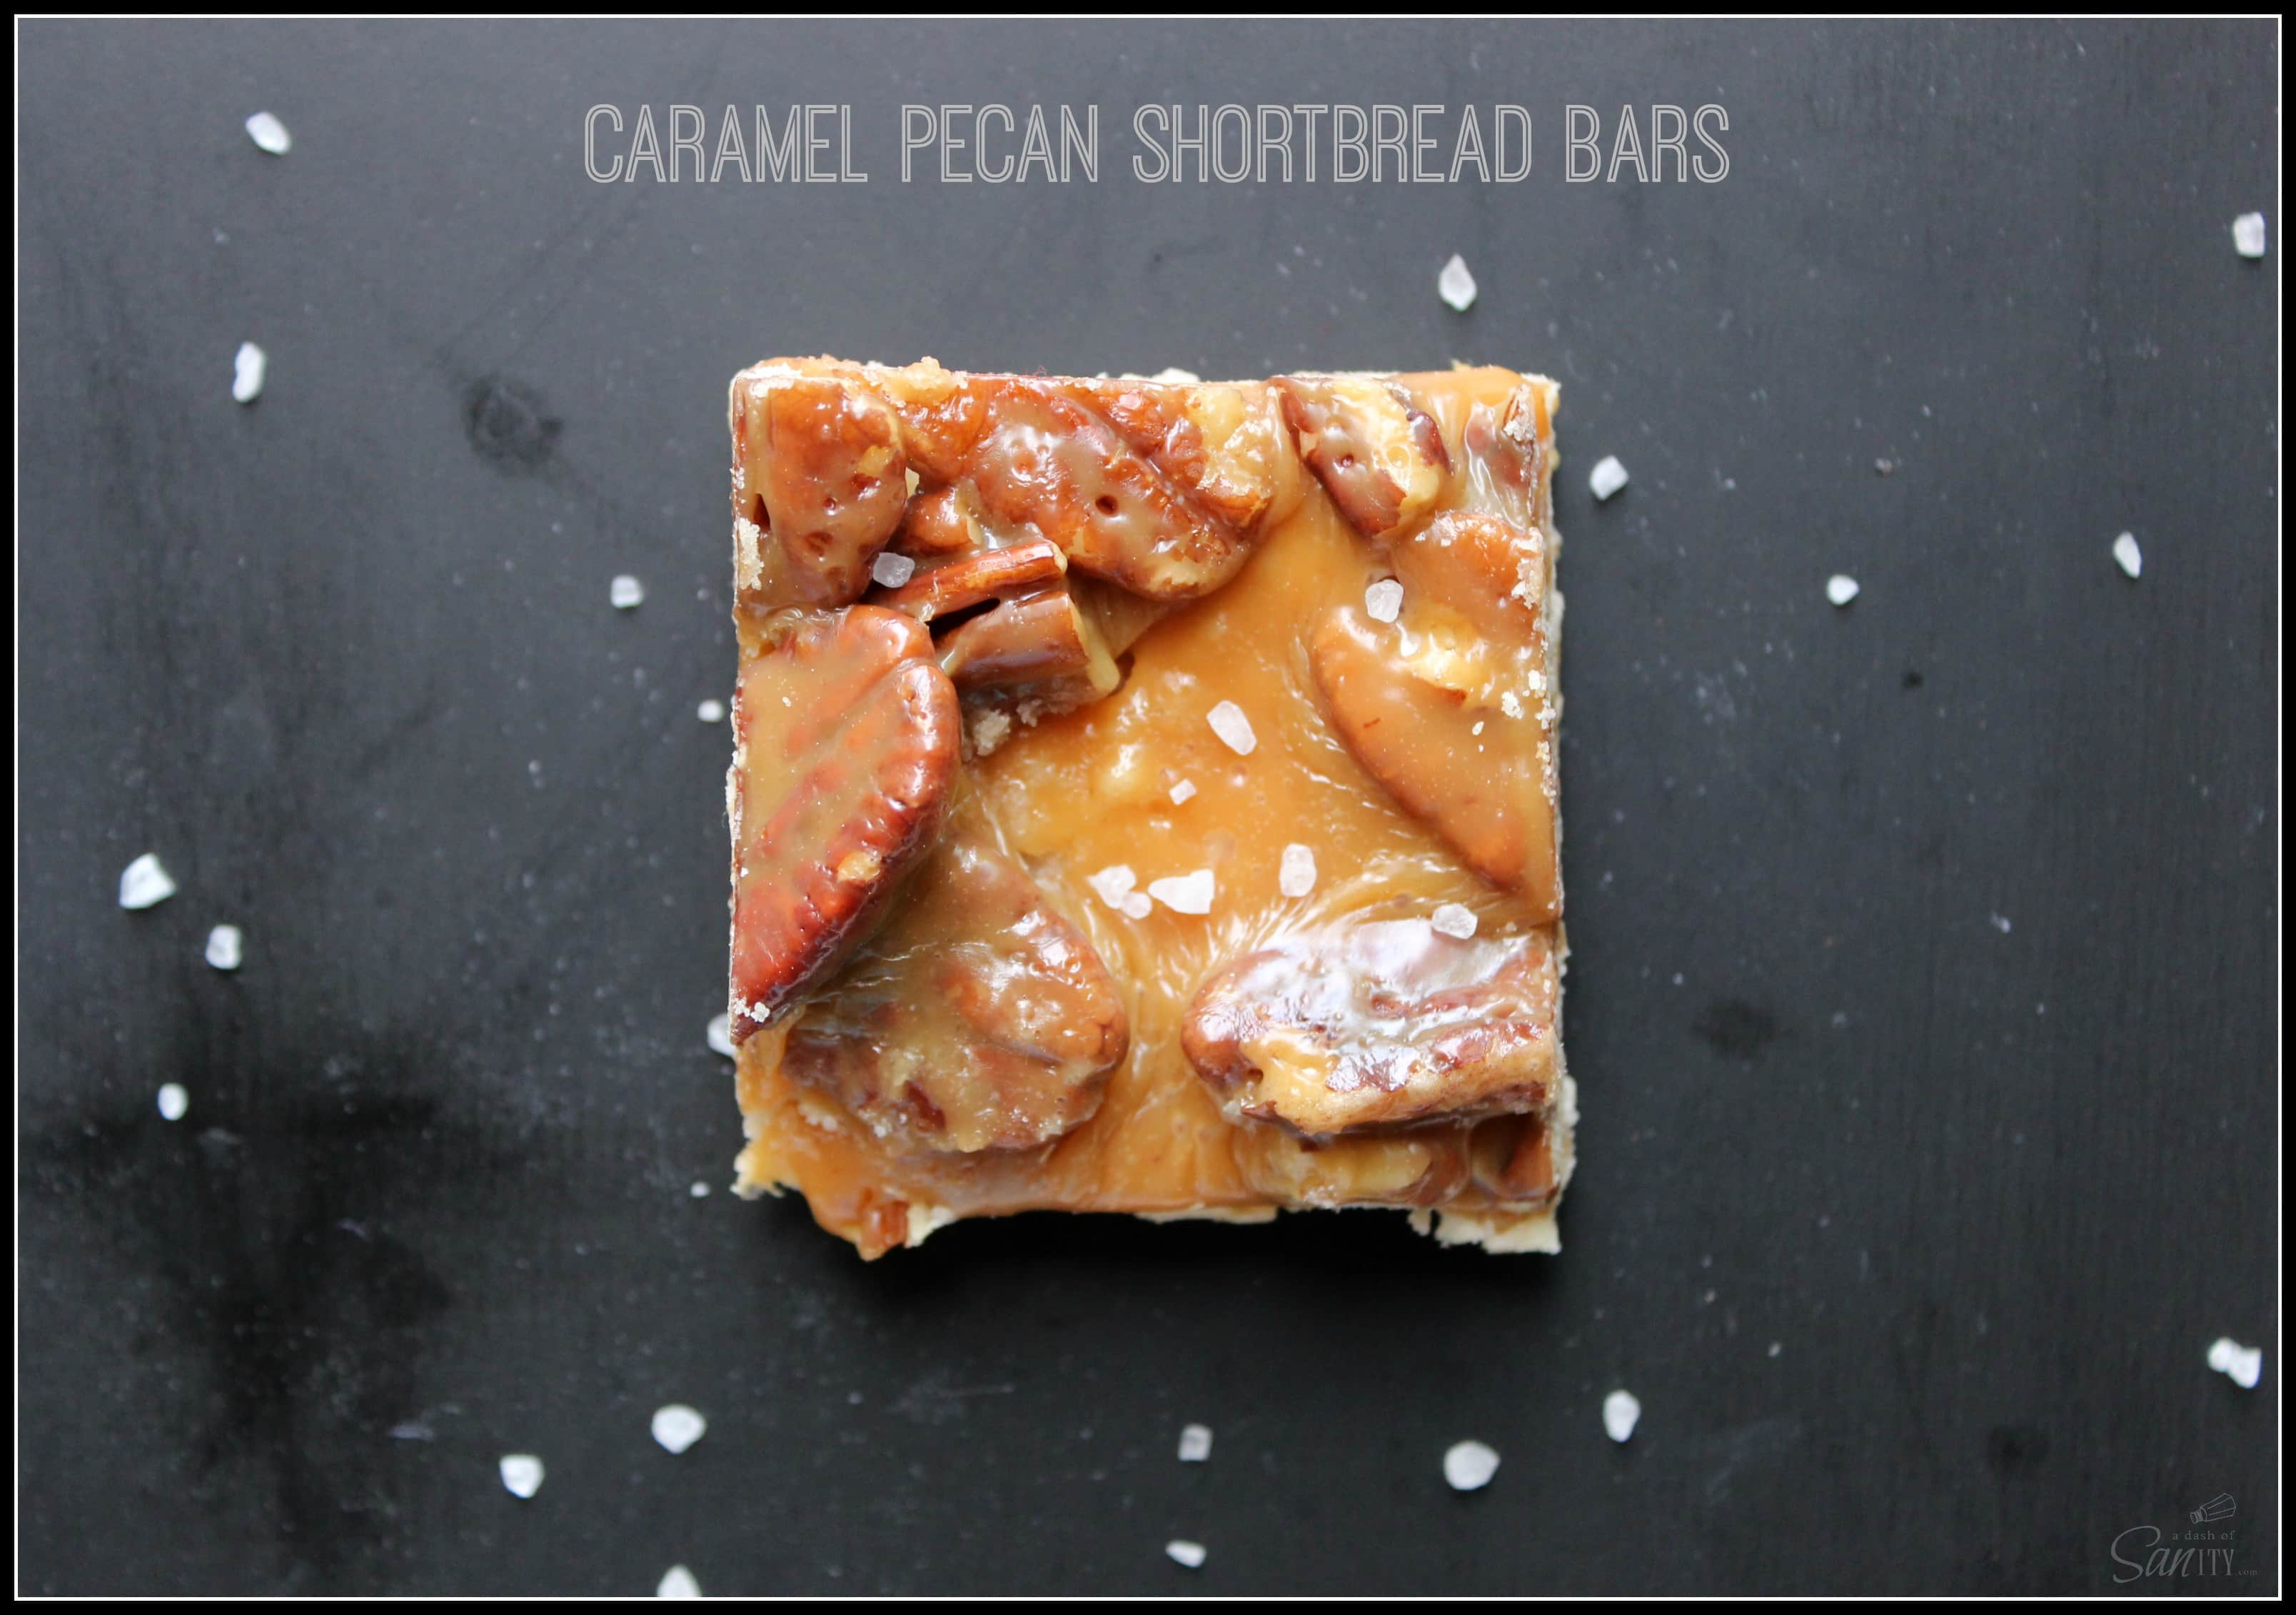 ... caramel, pecans and shortbread underneath it is a candy bar in the